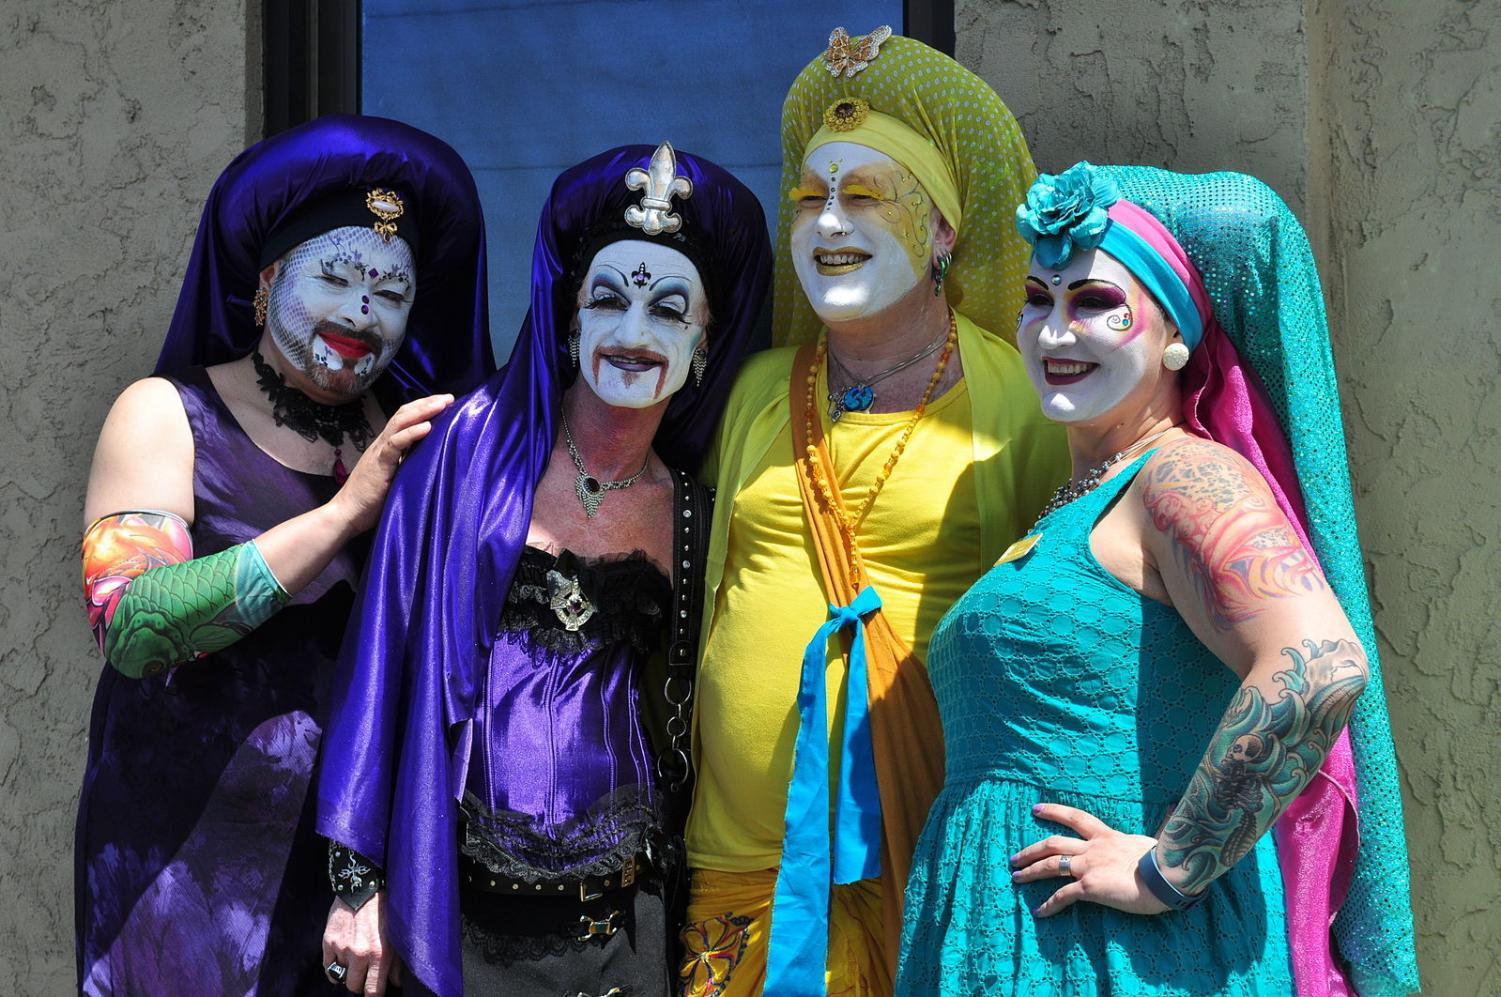 Drag group toes the line between respectfully parodying and disrespecting the Catholic Church